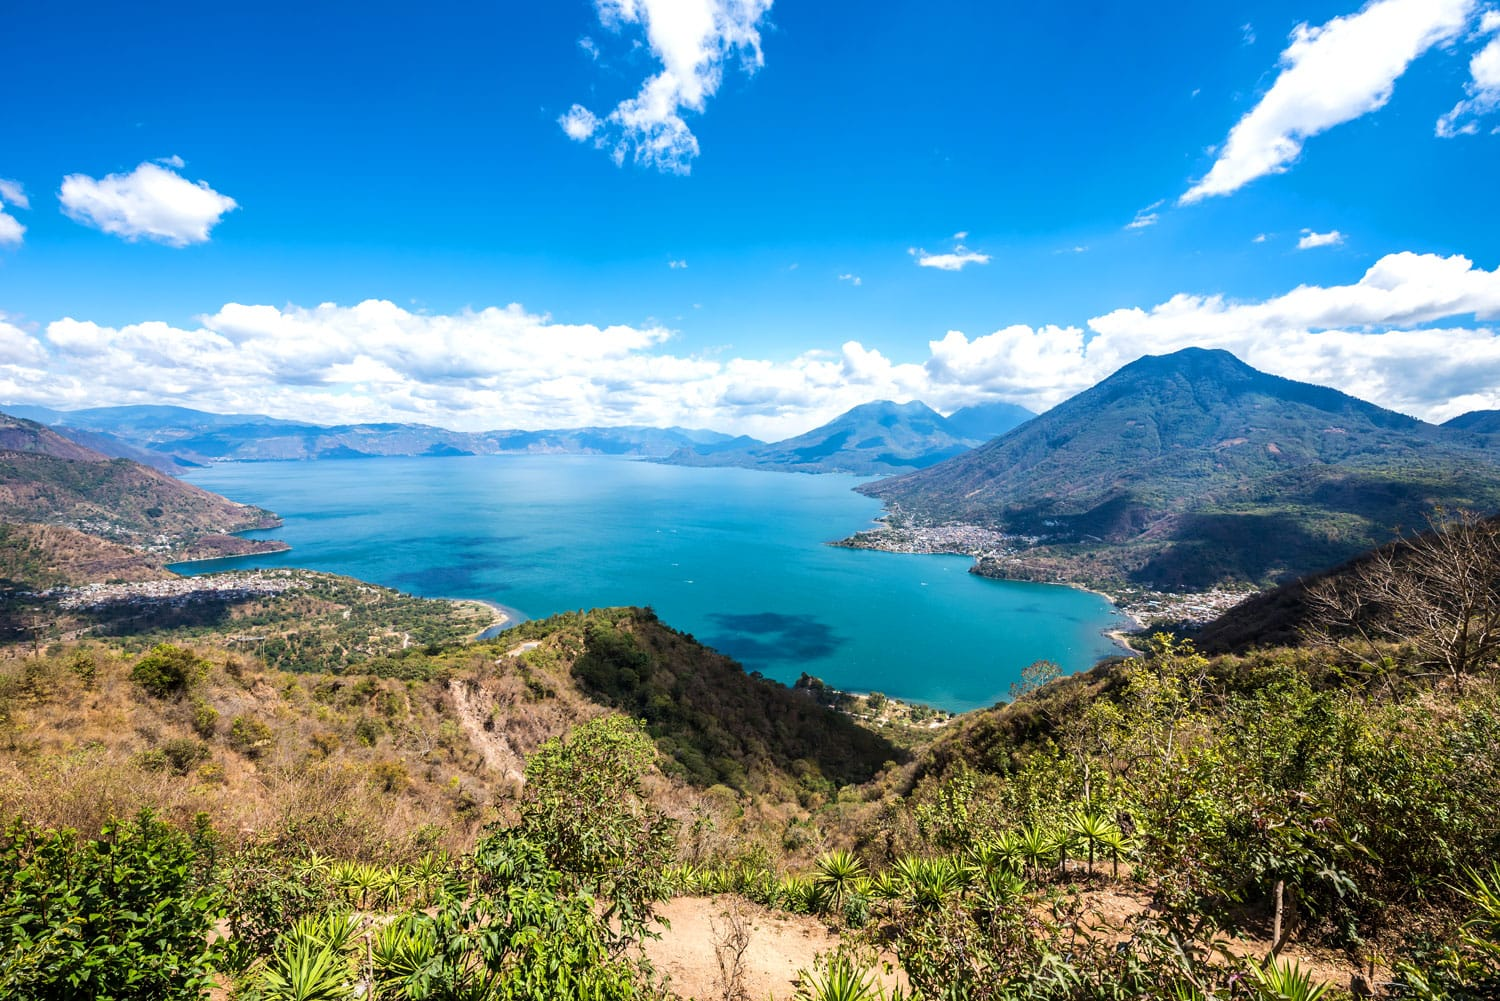 Aerial view of Lake Atitlan in Guatemala